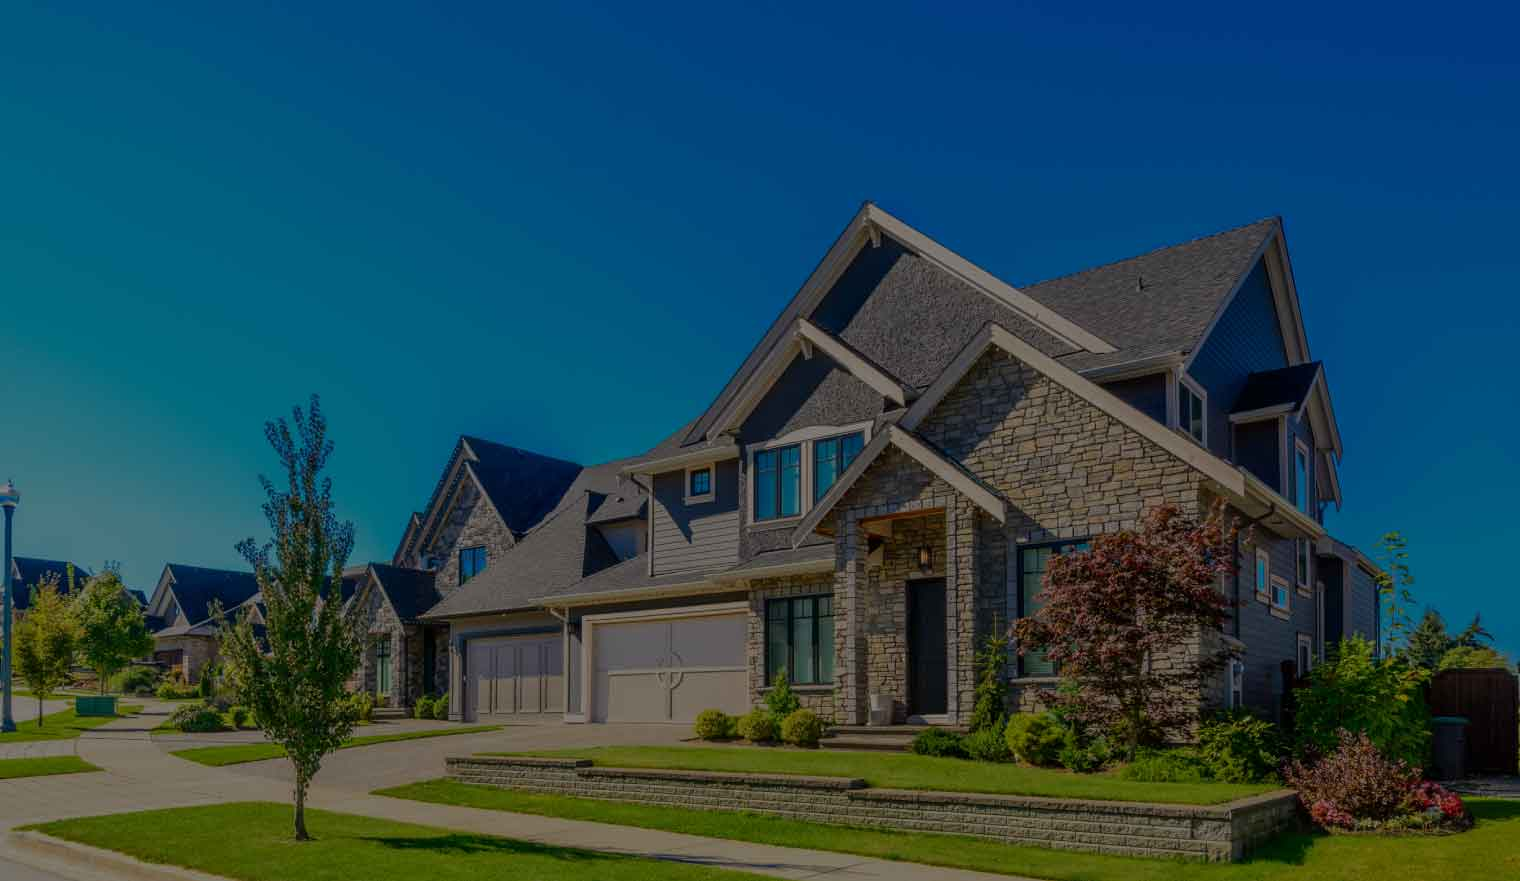 How Much Equity Do You Have In Your Home?